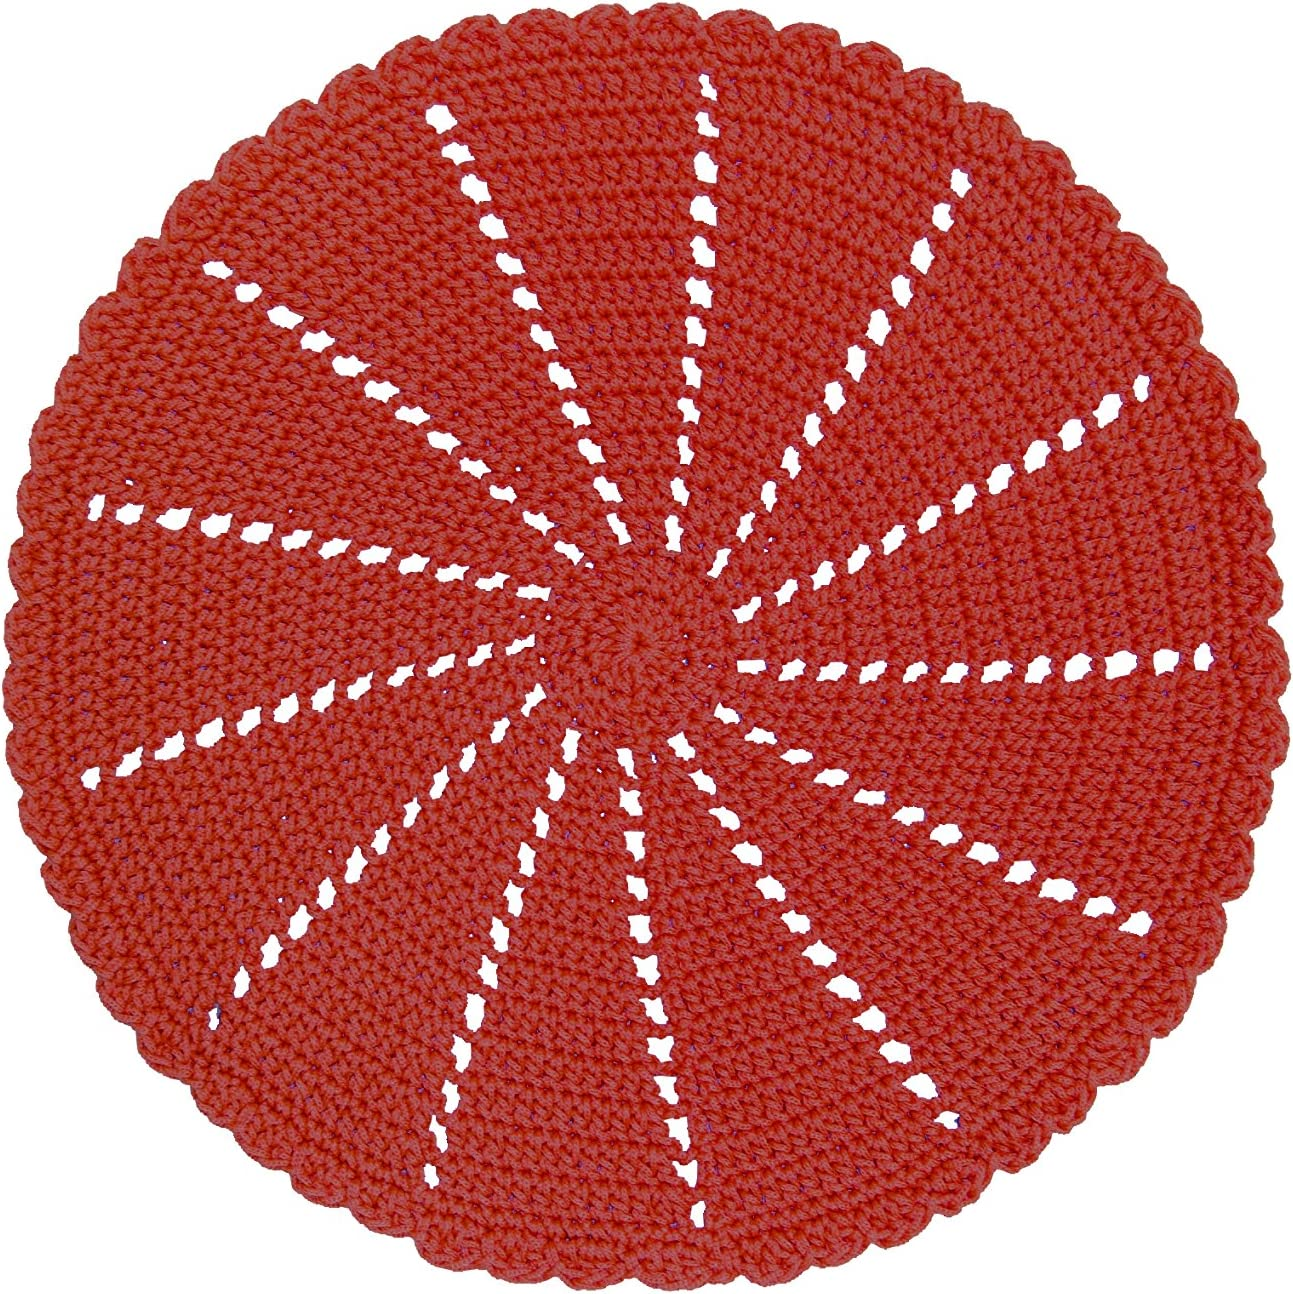 "Heritage Lace Mode Crochet Doily/Charger, 15"", Red"